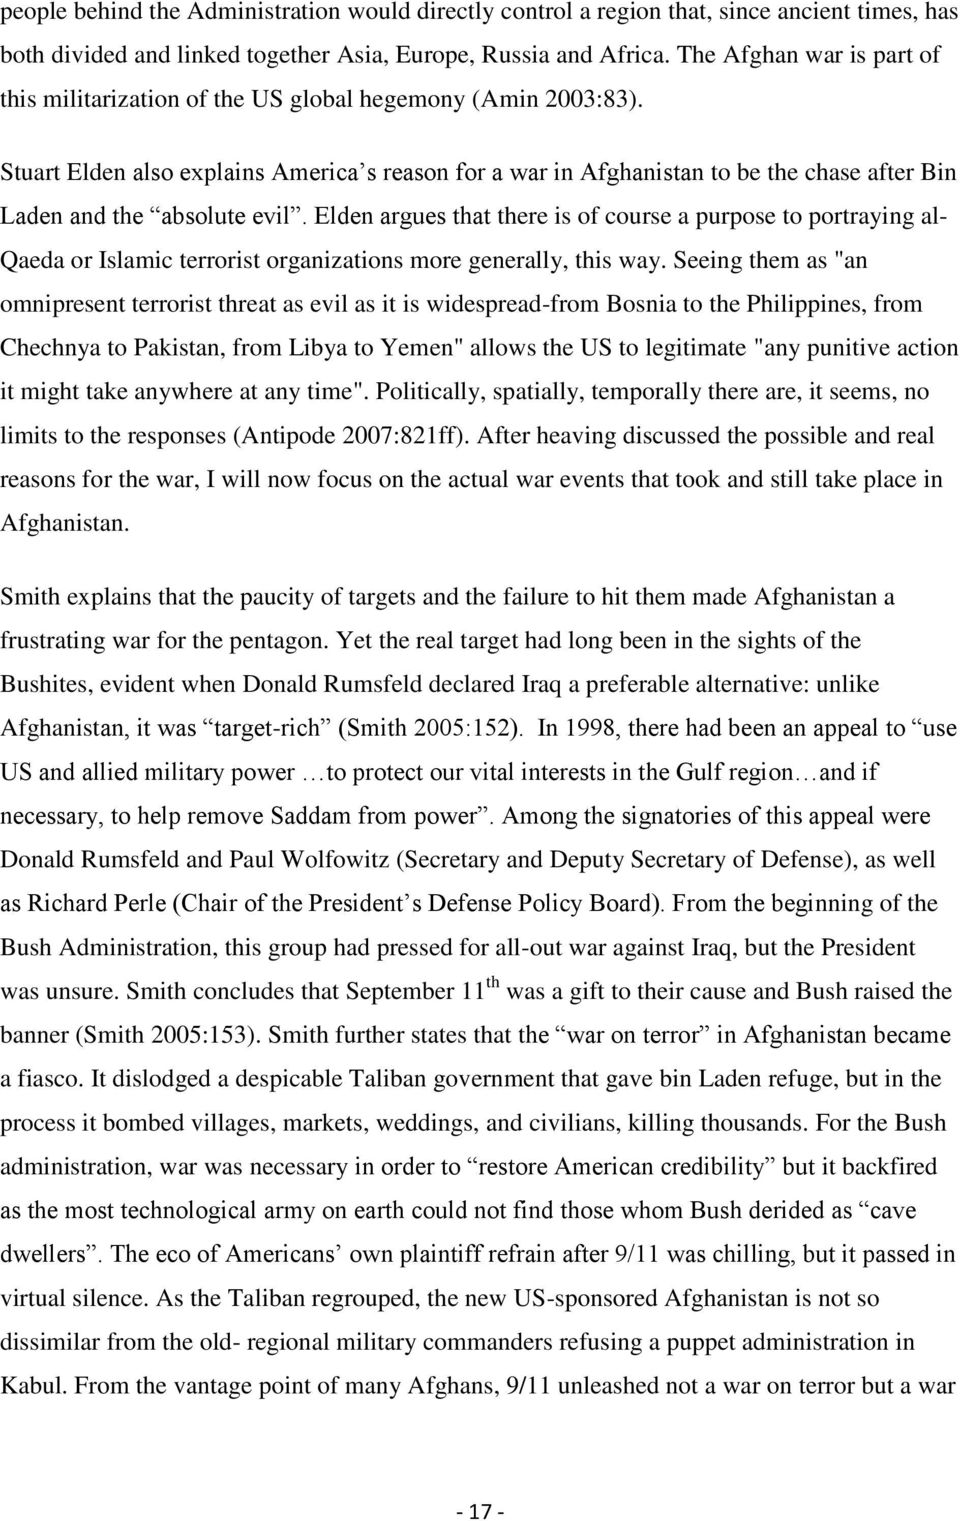 Stuart Elden also explains America s reason for a war in Afghanistan to be the chase after Bin Laden and the absolute evil.